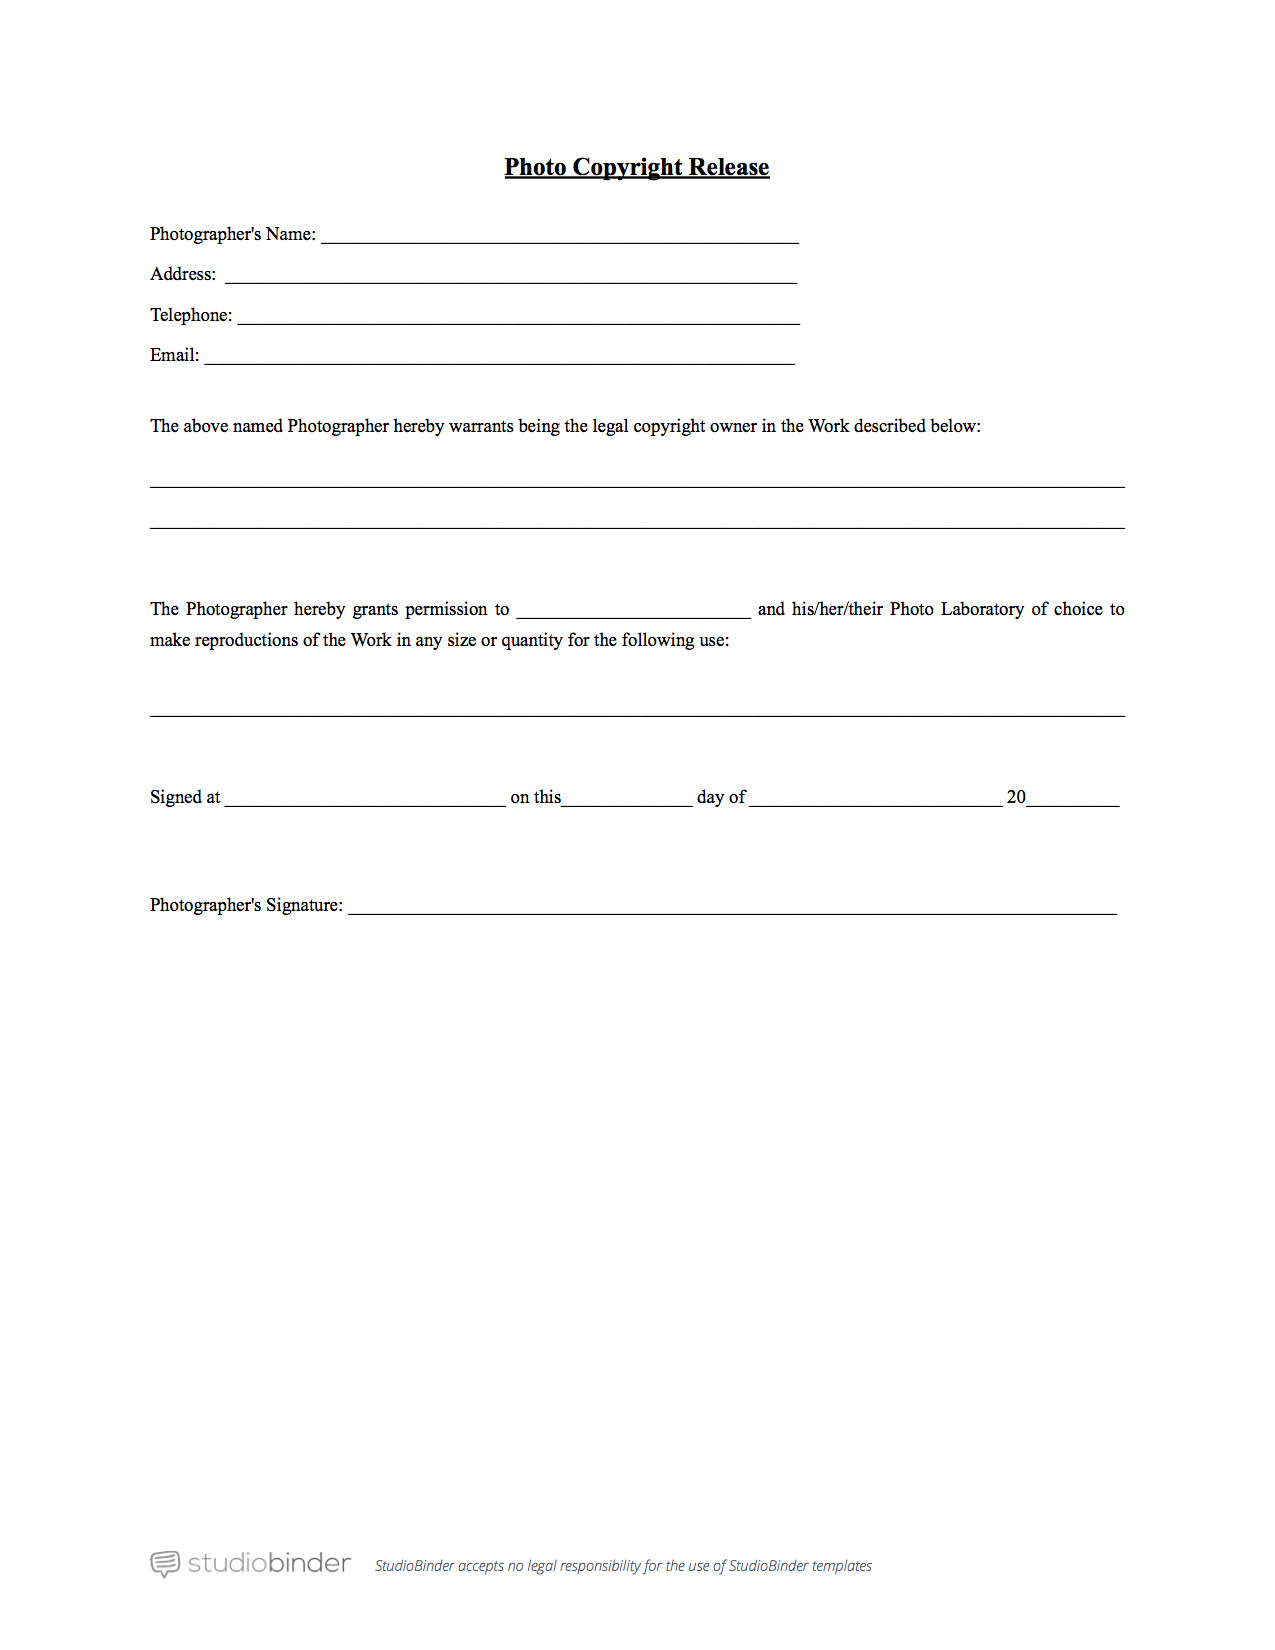 Photographic Release form Template why You Should Have A Photo Release form Template